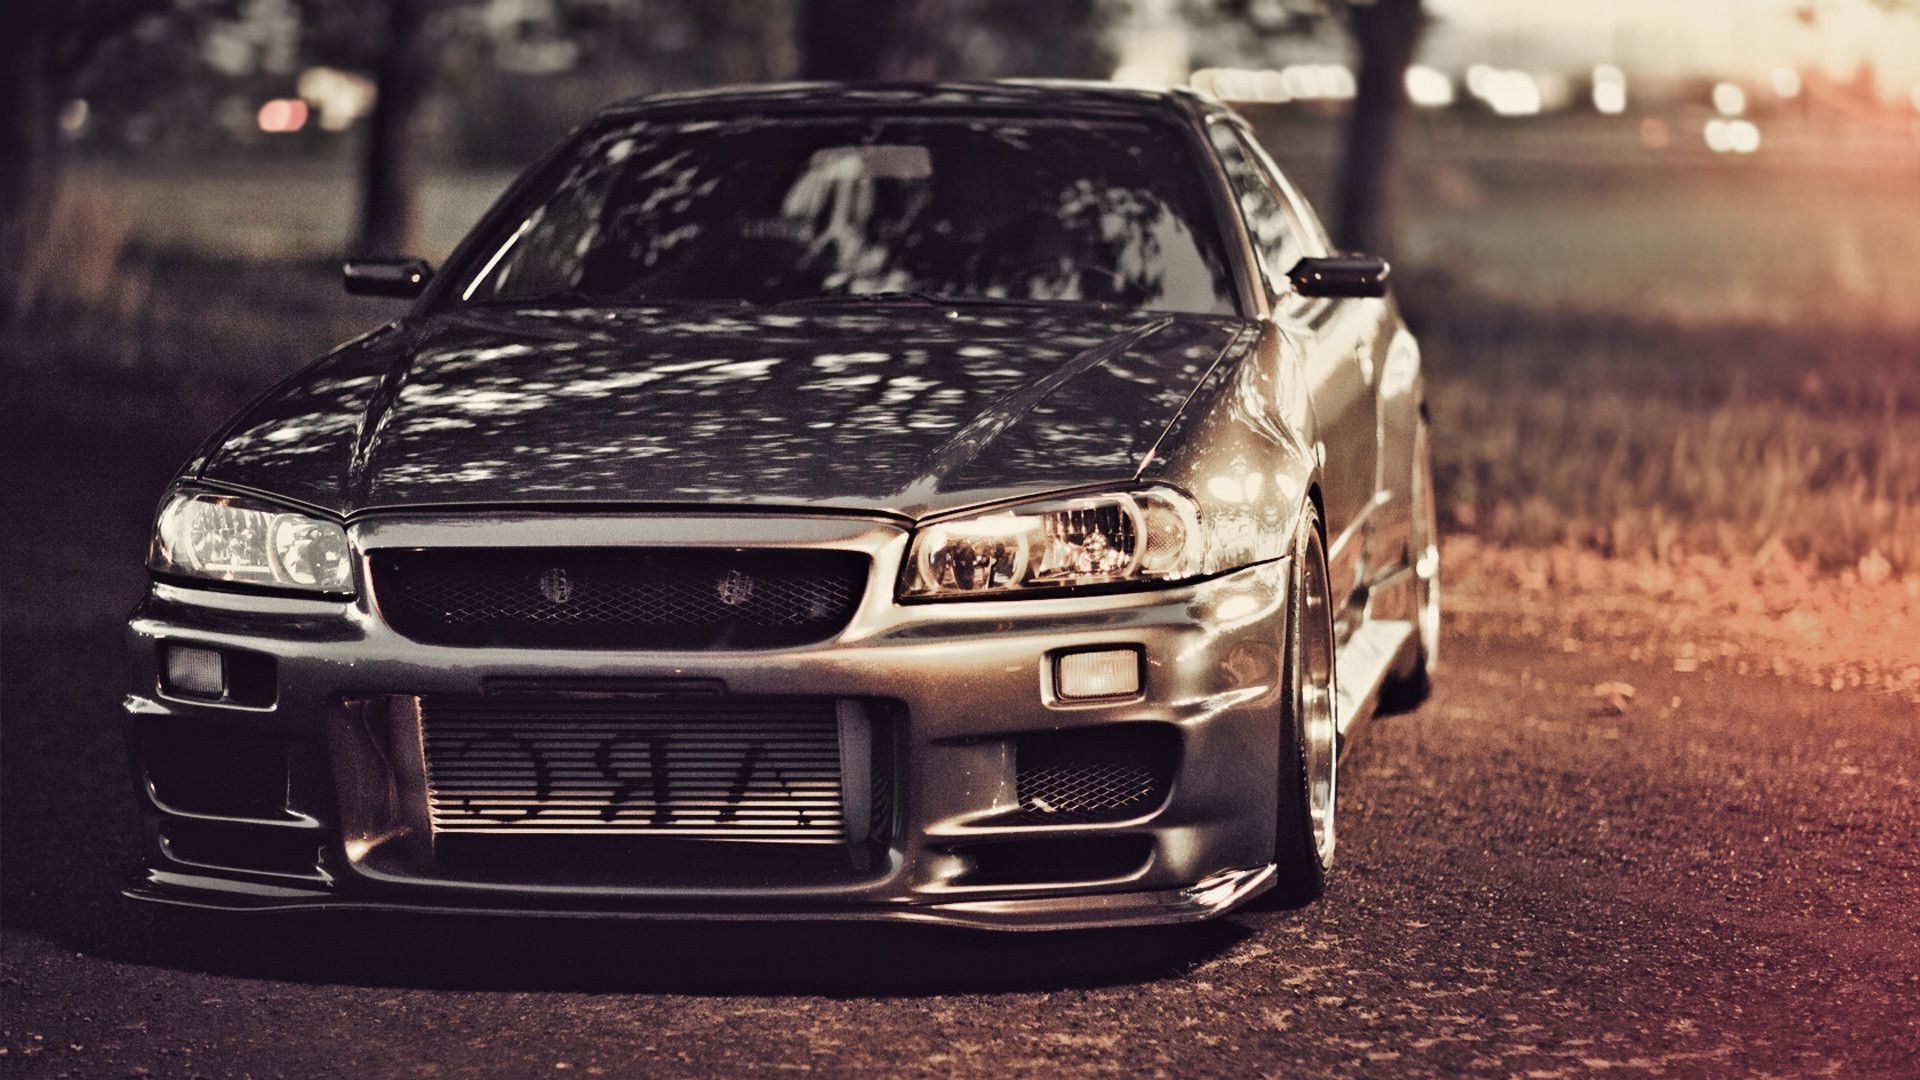 Nissan Skyline GTR R Wallpapers  Wallpaper  1920x1080